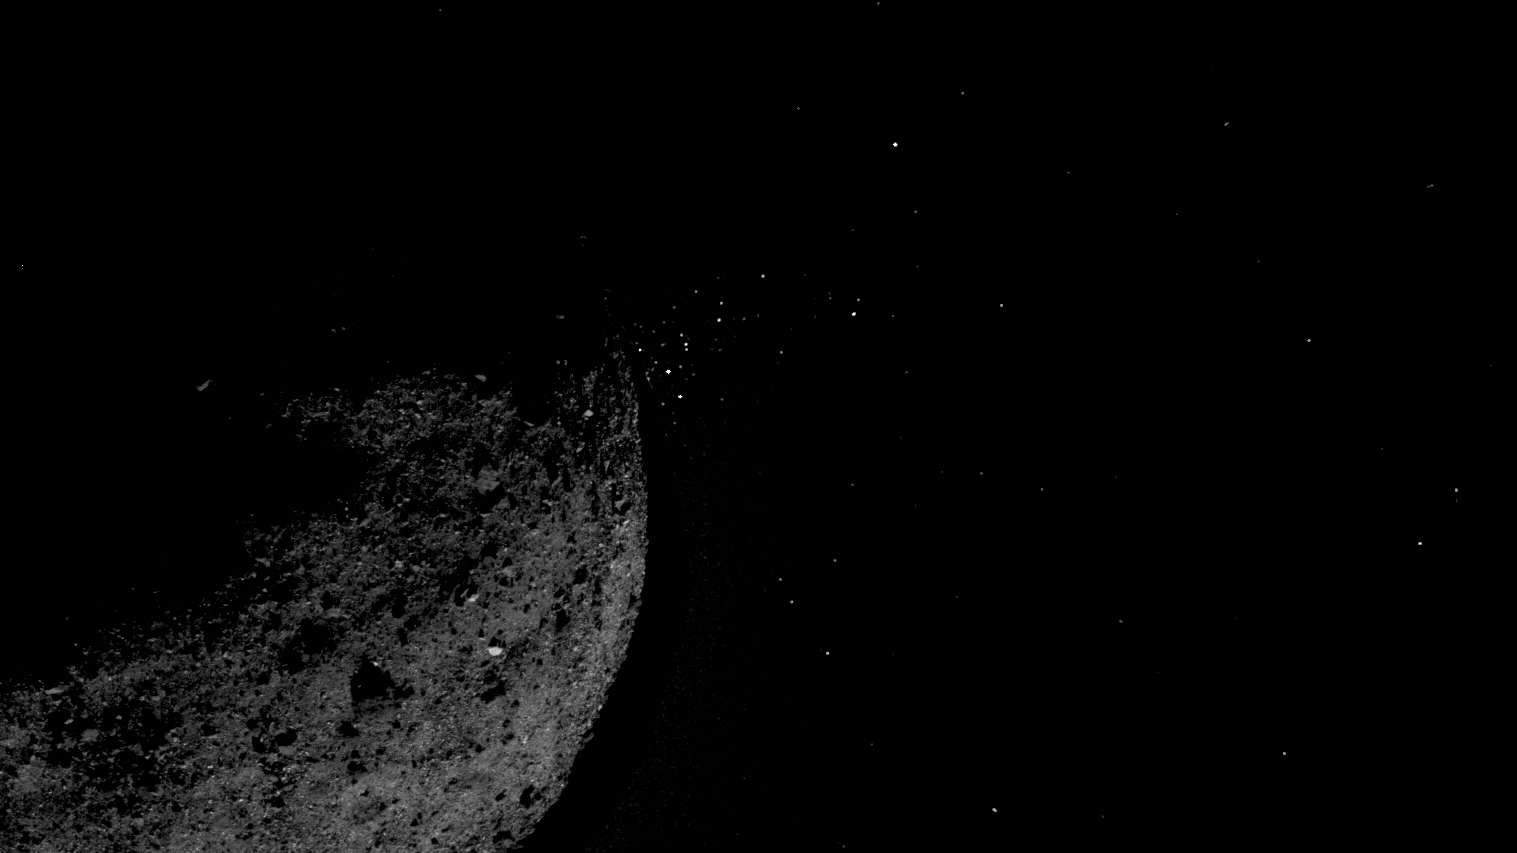 On the Asteroid Bennu, Surprising Activity and Rugged Terrain